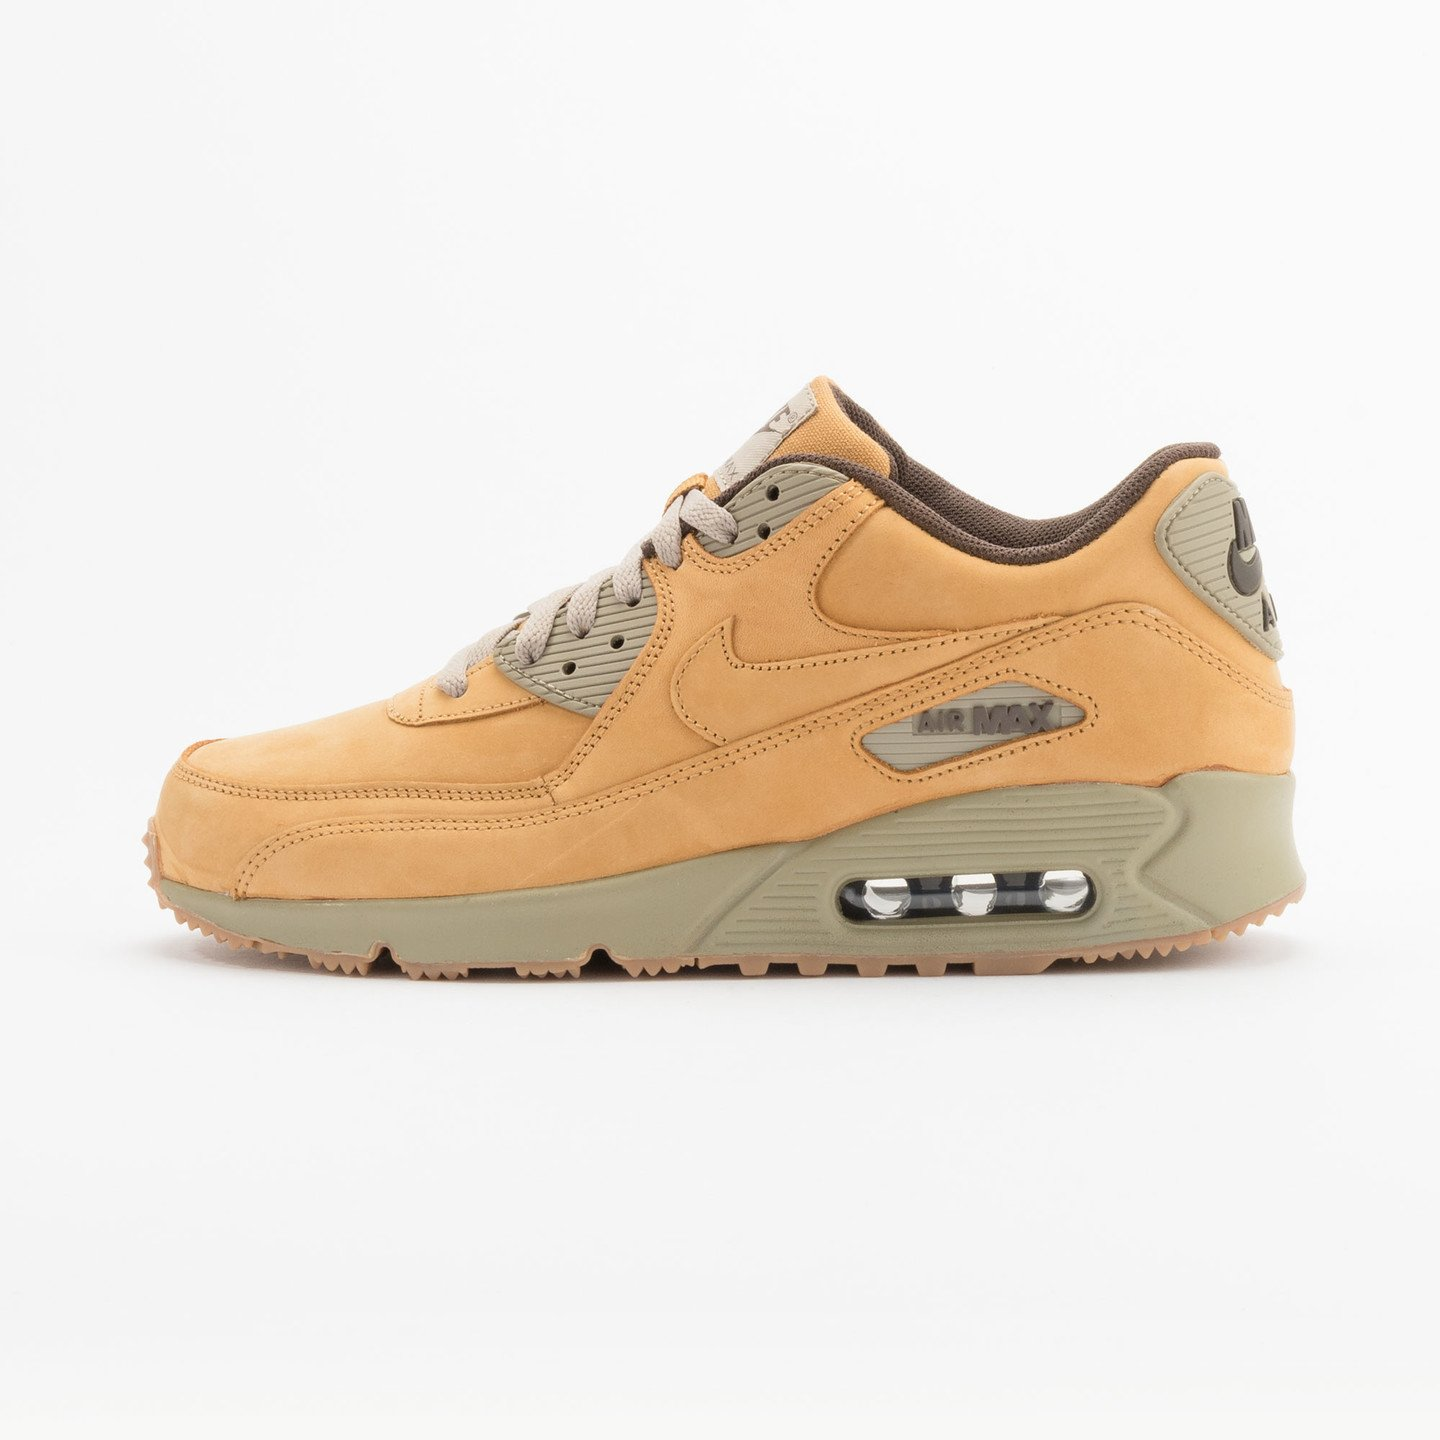 Nike Air Max 90 Winter Premium Bronze / Baroque Brown 683282-700-46